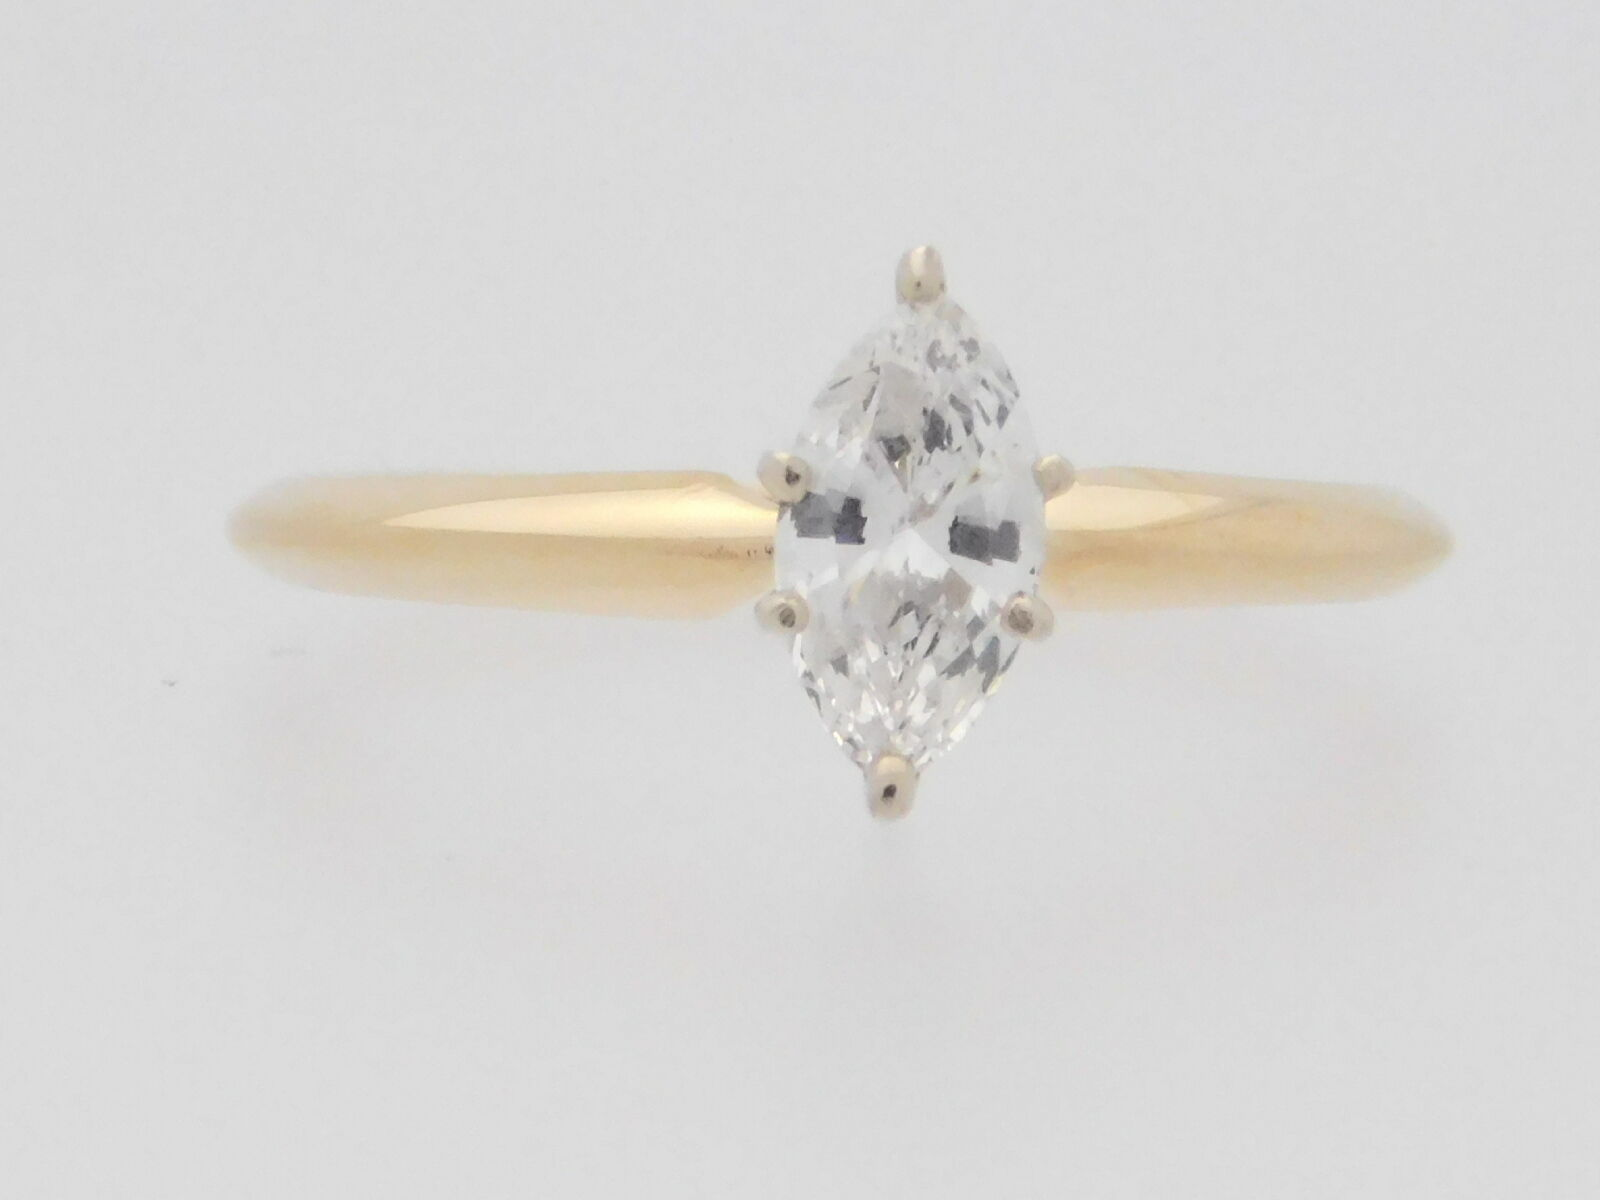 0.45 CARAT MARQUISE CUT DIAMOND SOLITAIRE ENGAGEMENT RING 14K YELLOW gold